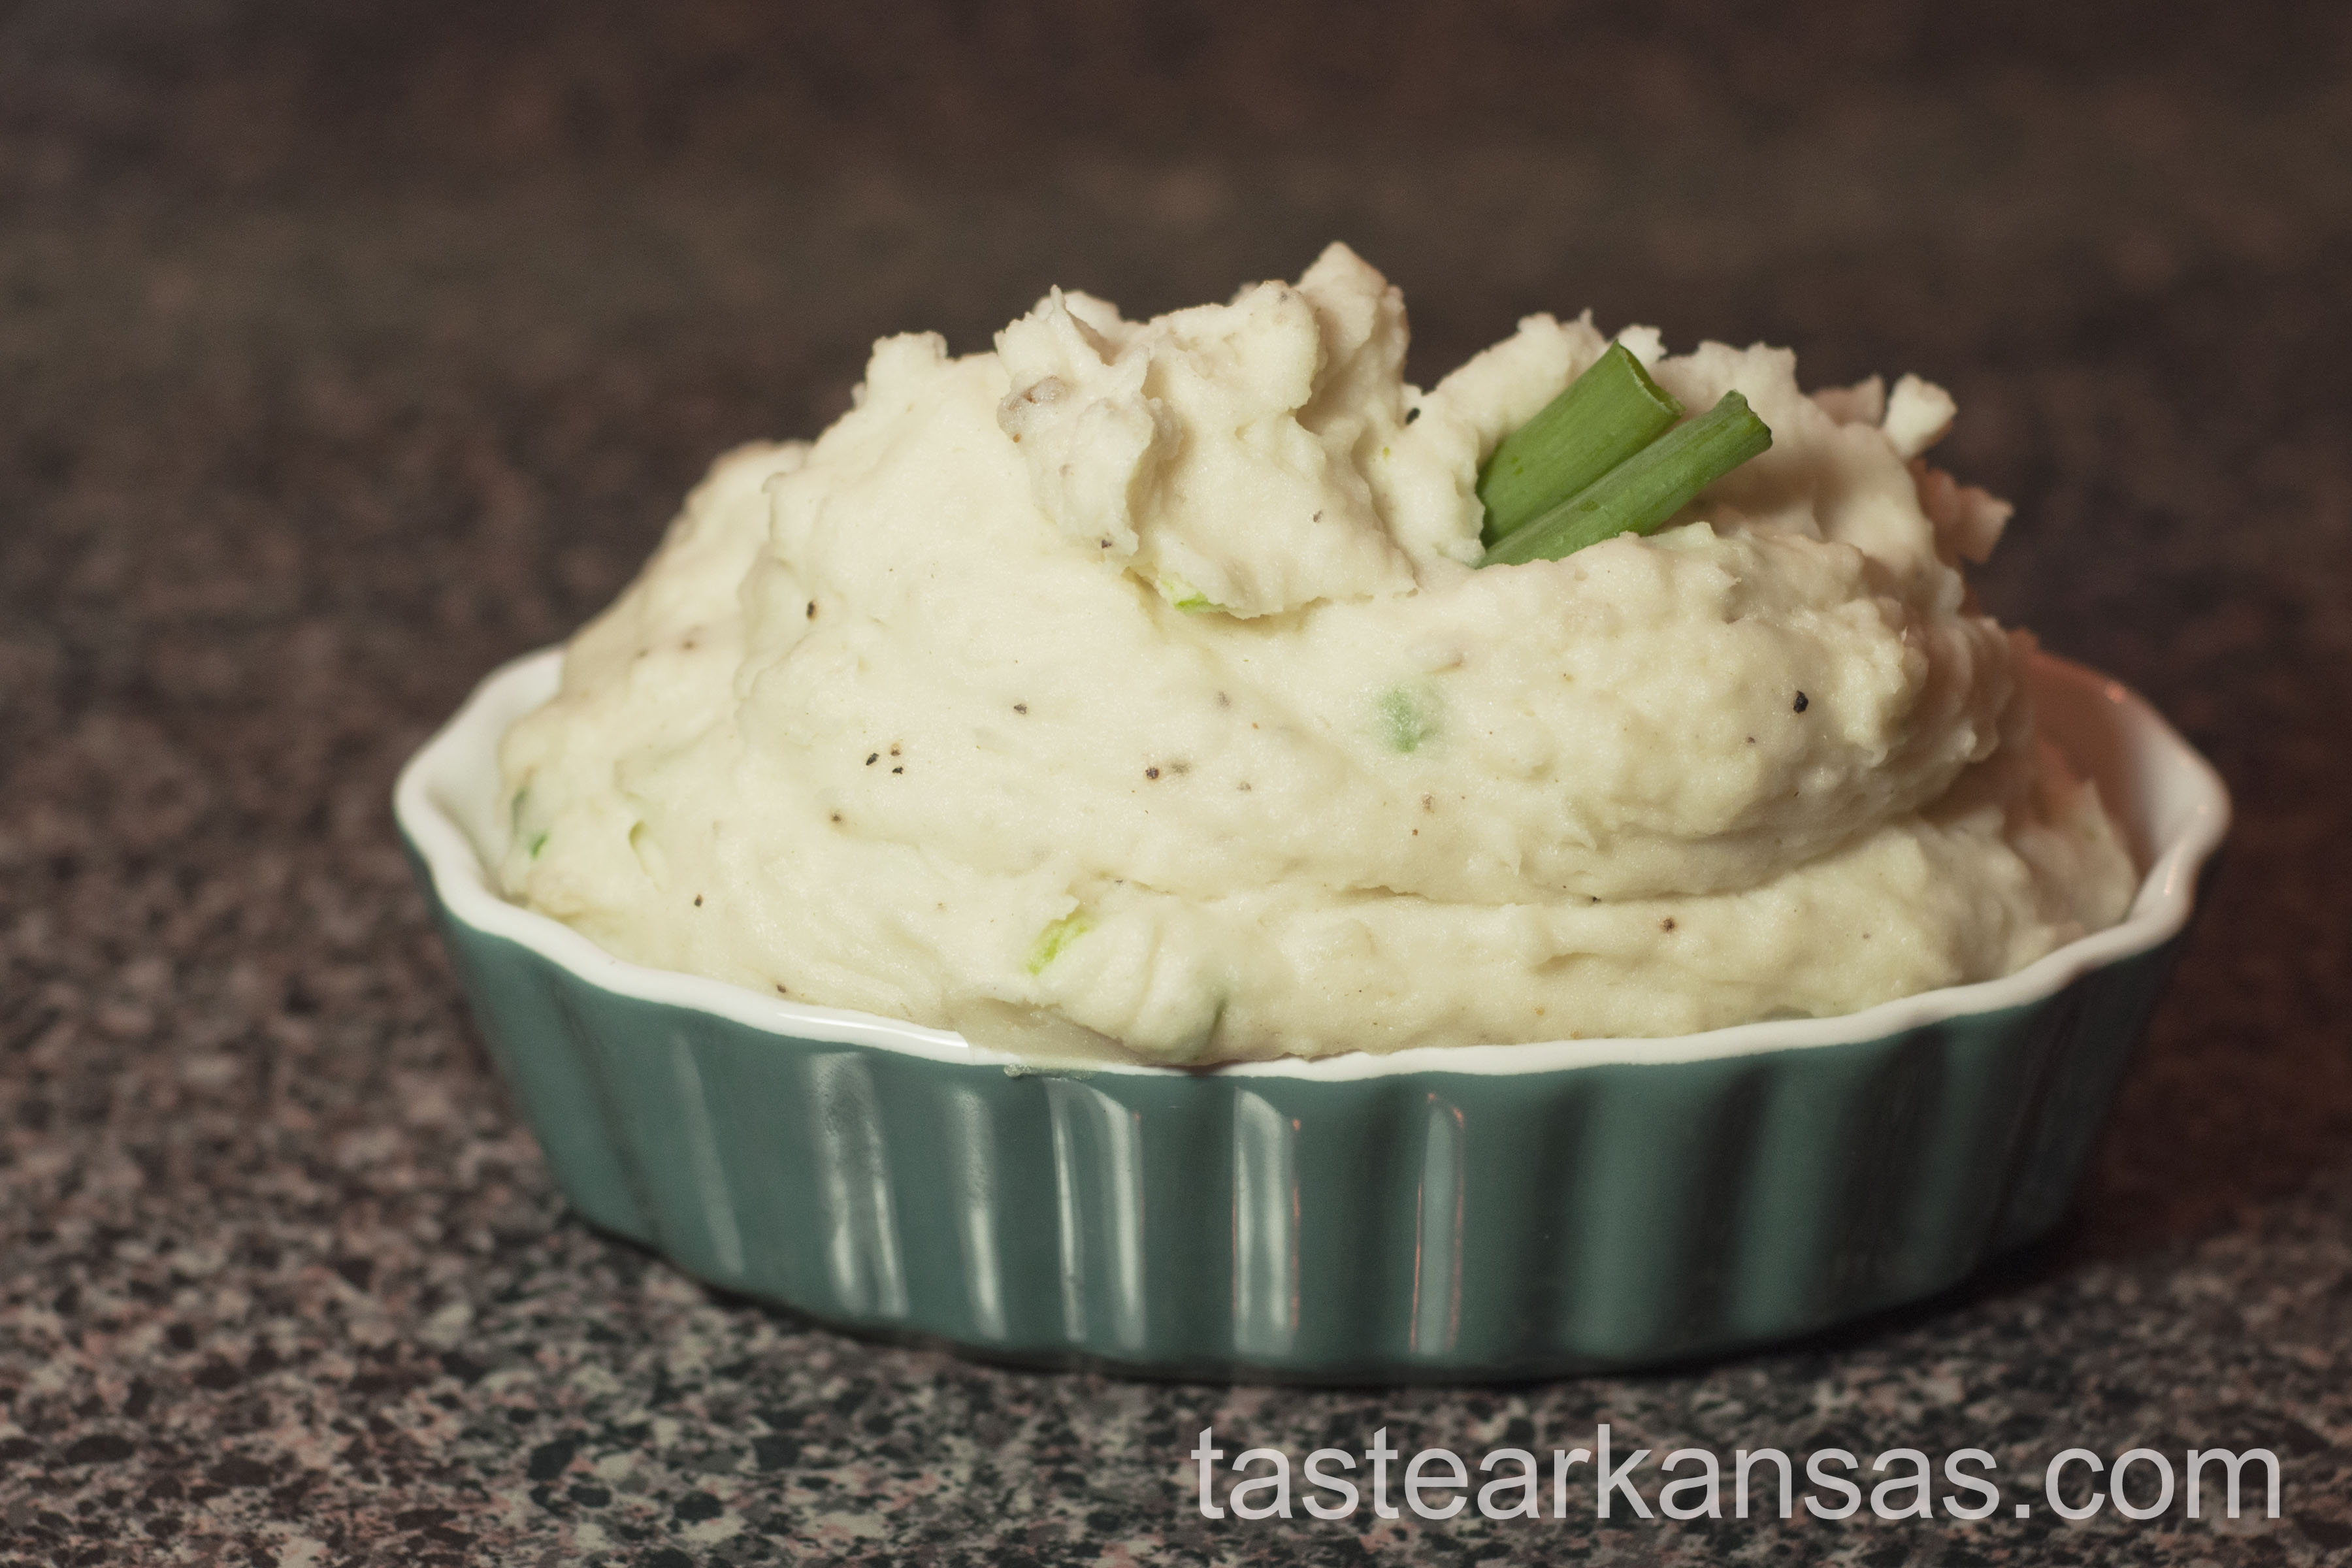 this image is of a robust portion of Garlic Chive Creamed Potatoes